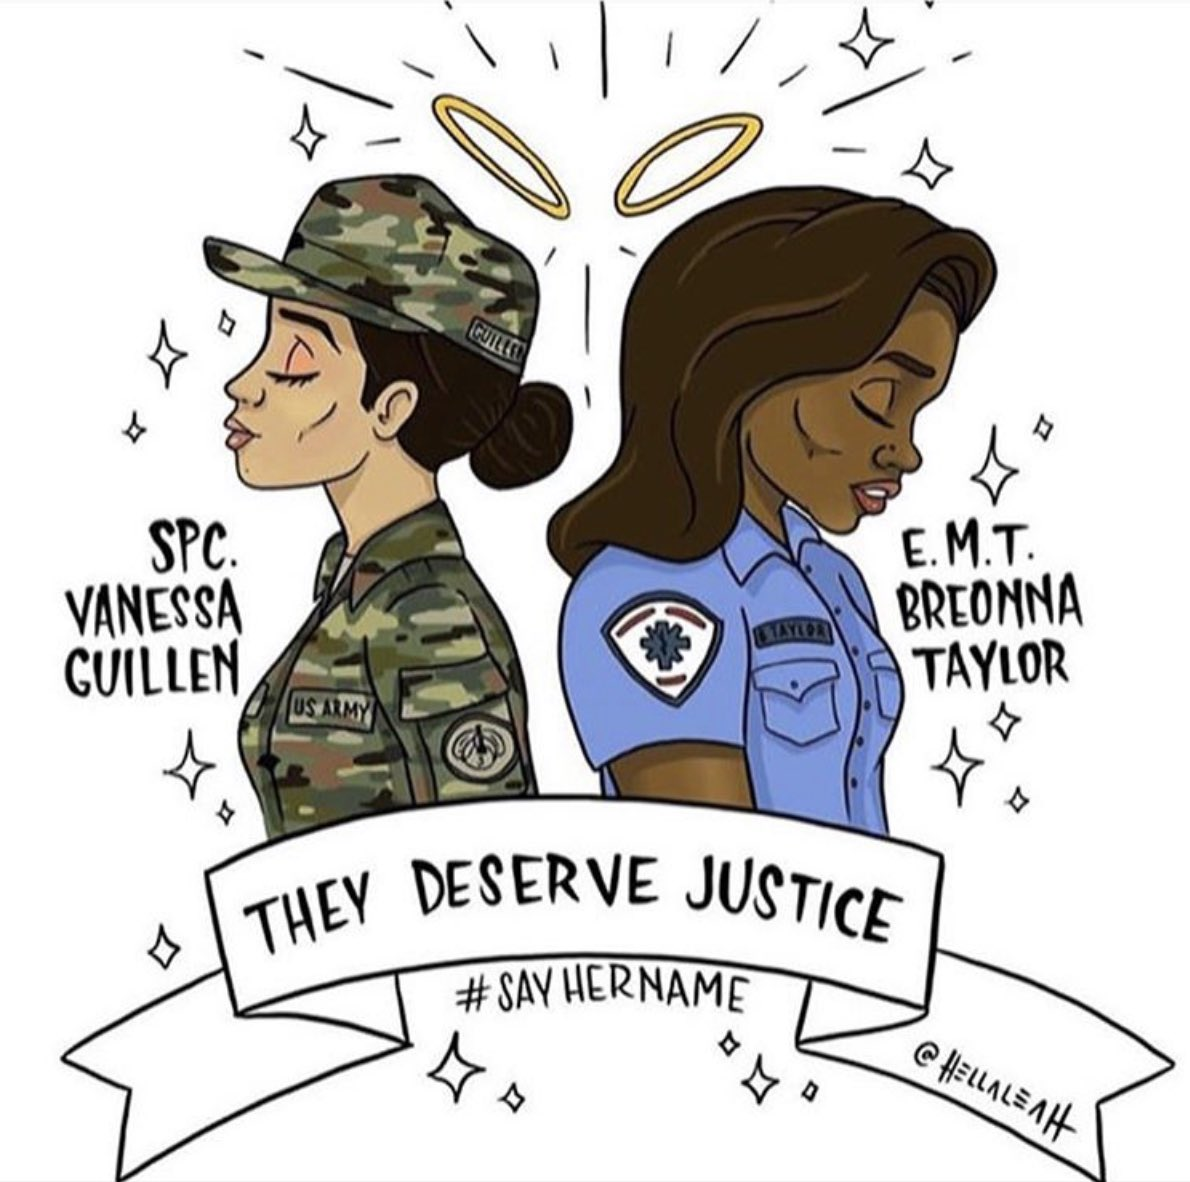 #VanessaGuillen was beaten to death with a hammer on a military base!Her murder was covered up for months before any action was taken!They know who did it and no one is saying anything #BreonnaTaylor's name is no longer trending & the police that murdered her are still free! https://t.co/YvPLZ0Xvvt